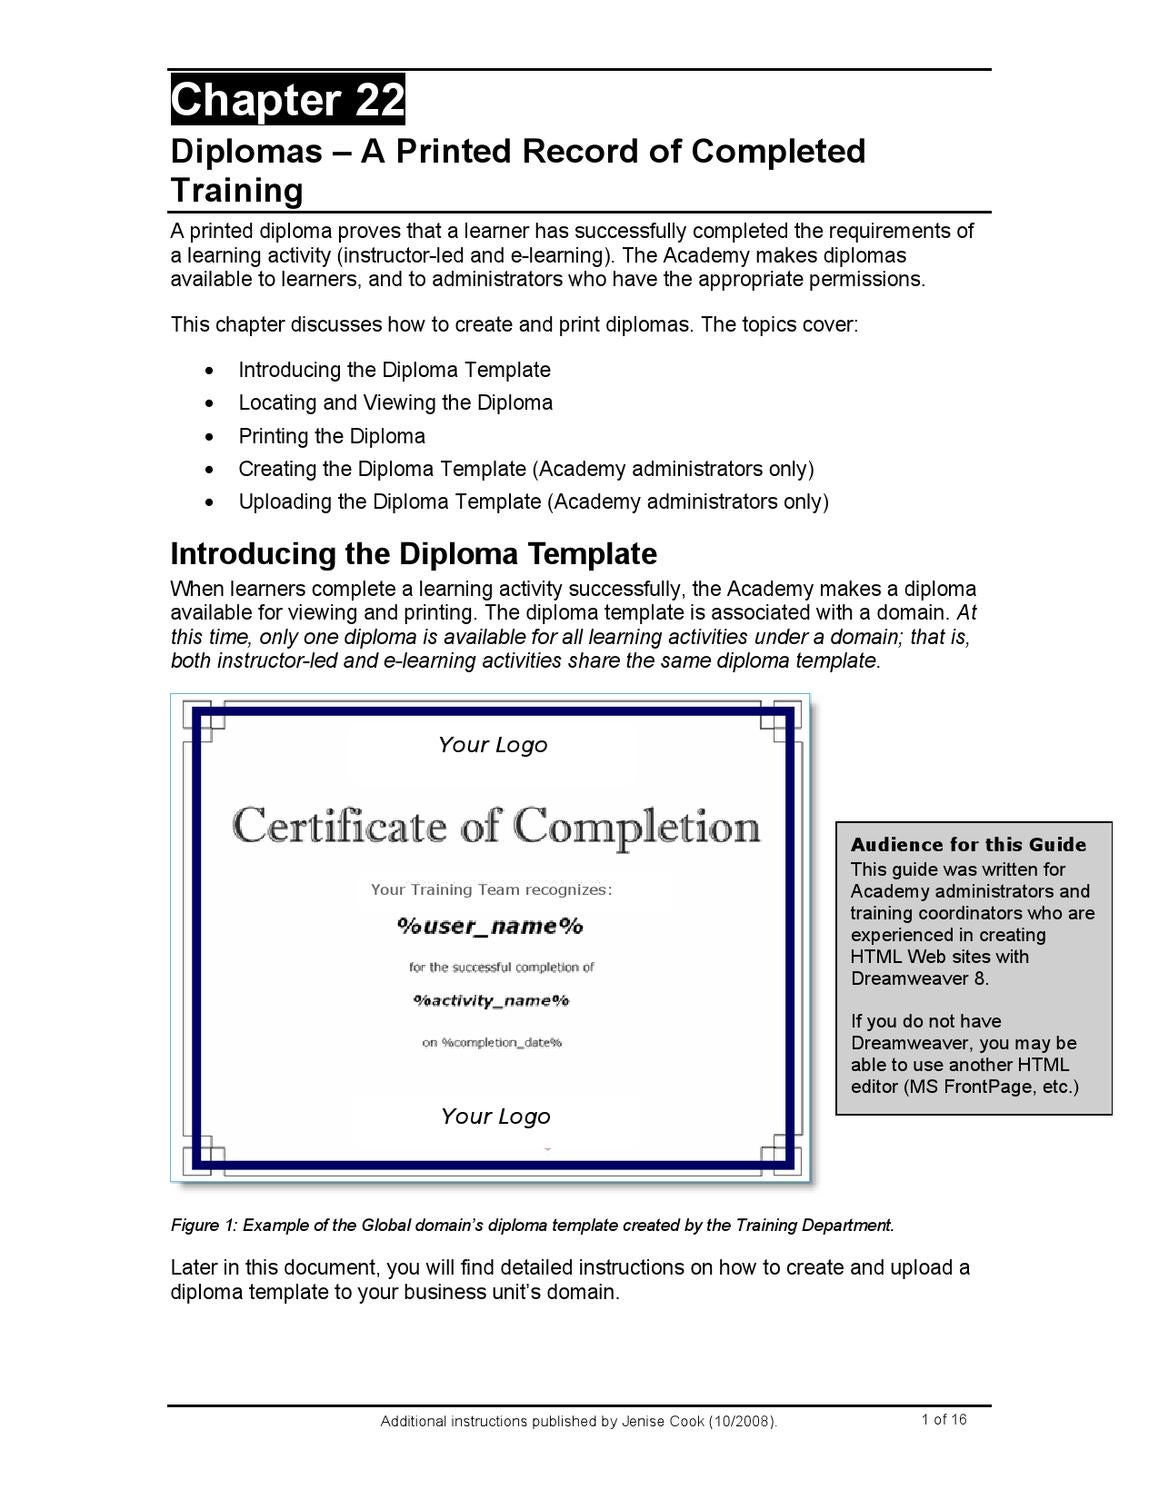 How to create a certificate of completion learner diploma in how to create a certificate of completion learner diploma in sumtotal systems totallms 72 by ridgeviewmedia jenise cook issuu xflitez Images